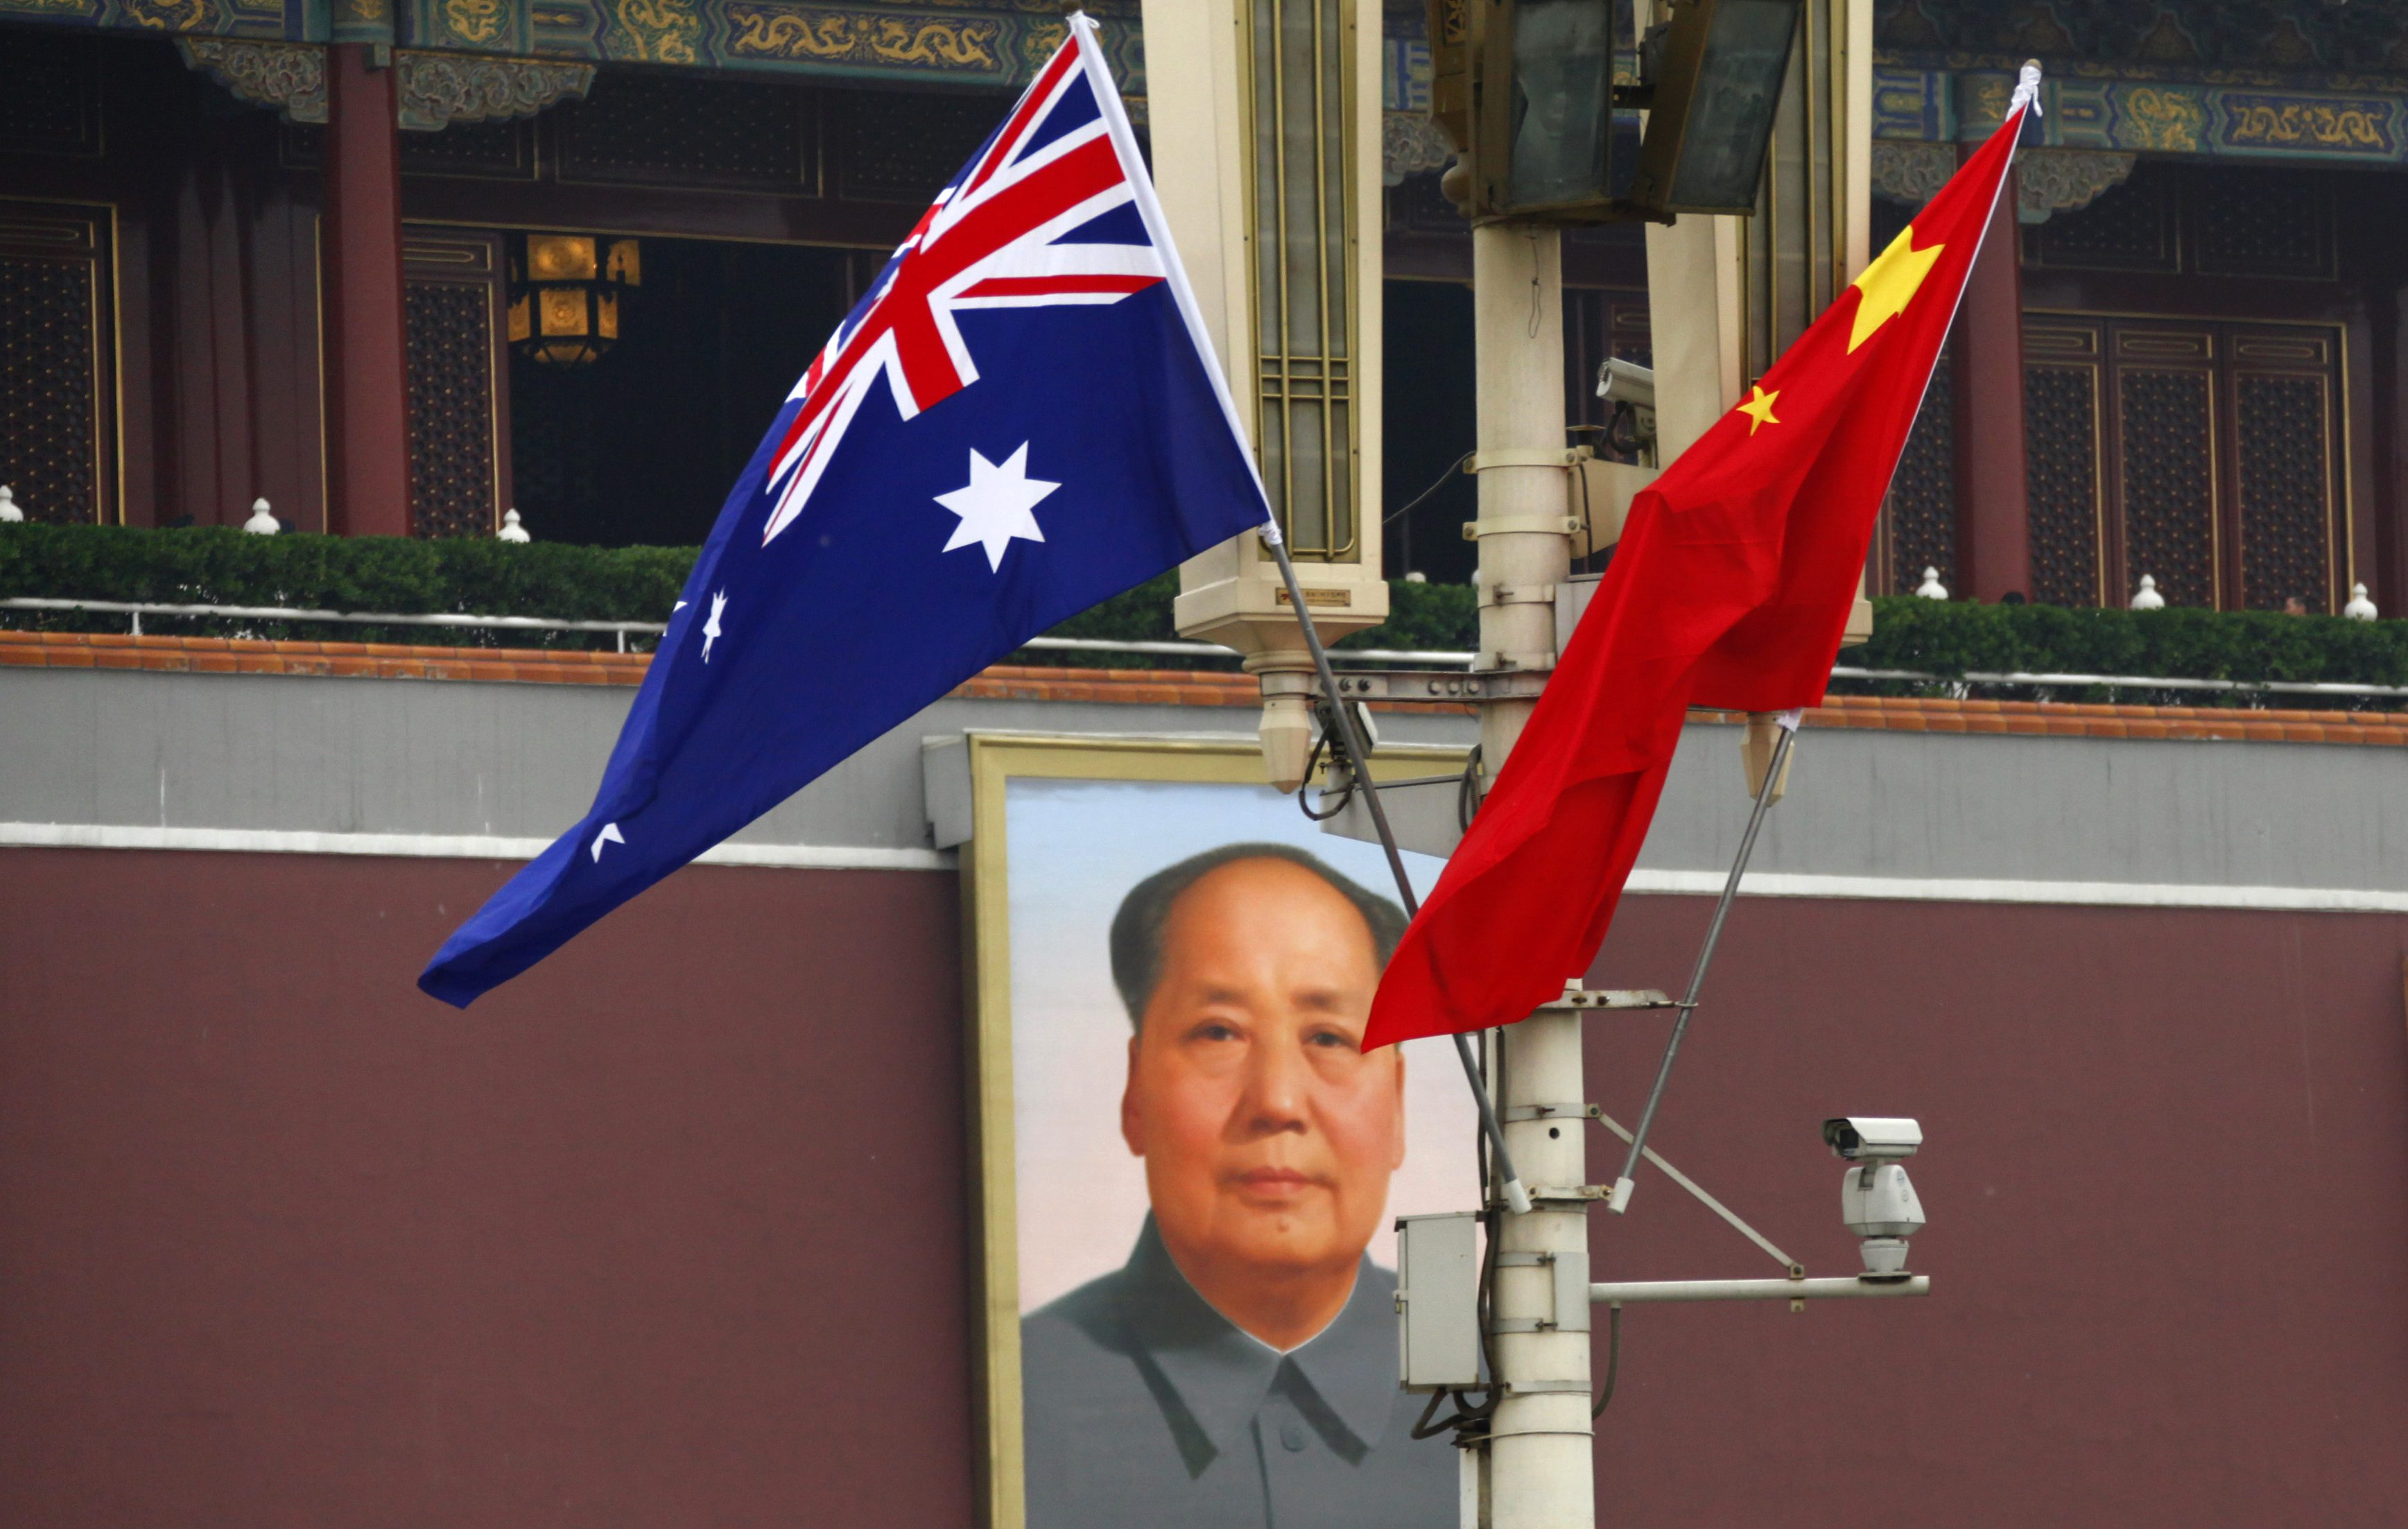 The Australian national flag flies next to the Chinese national flag in front of the giant portrait of former Chairman Mao Zedong on Tiananmen Square in Beijing, April 25, 2011.